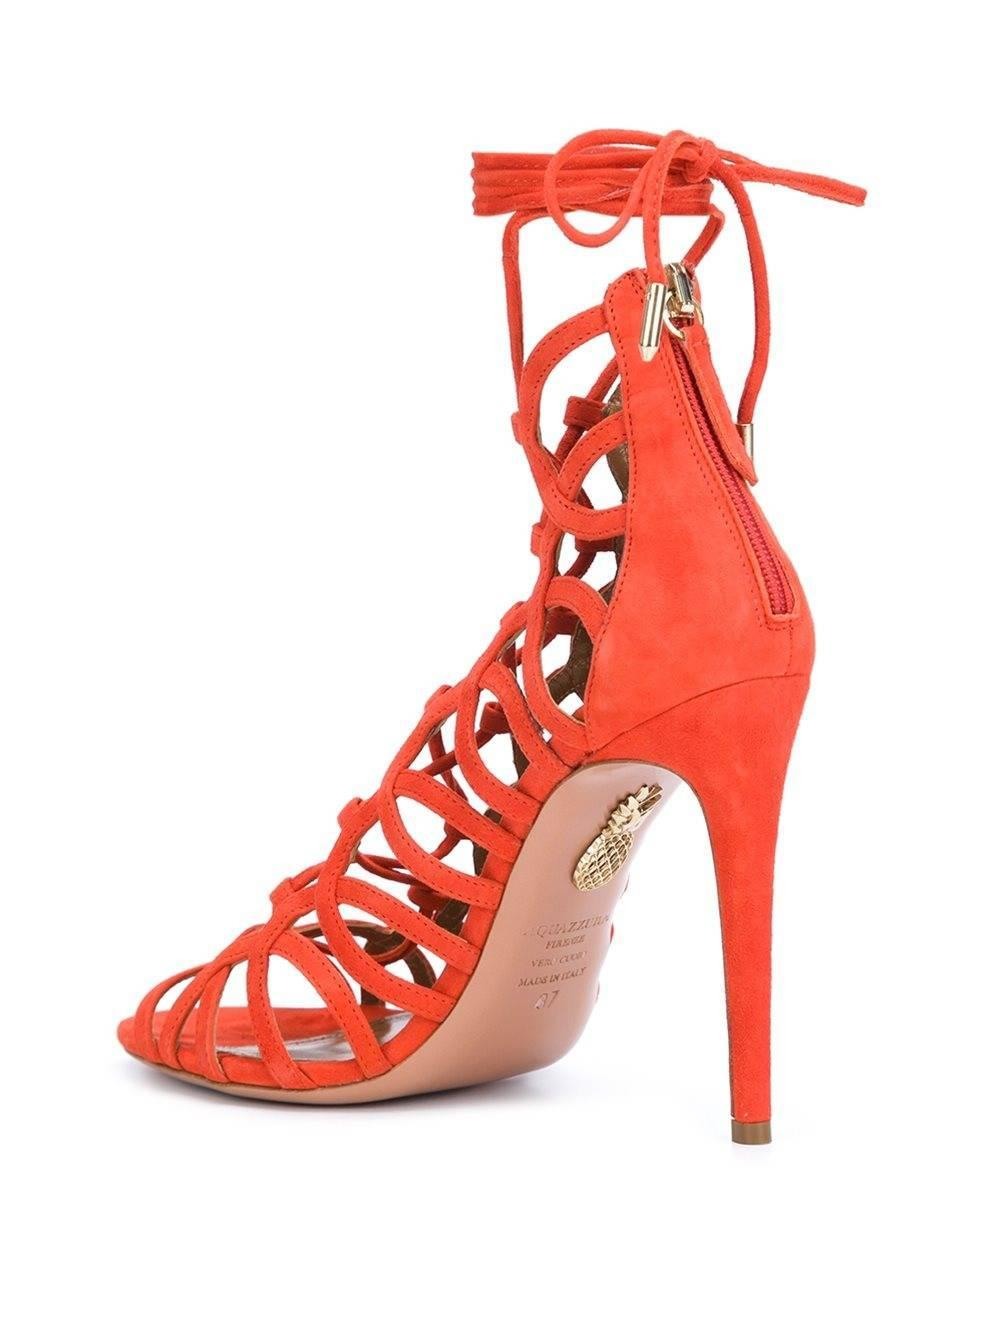 163ababcfbb9 Aquazzura New Orange Suede Cut Out Lace Up Gladiator Heels Sandals in Box  at 1stdibs